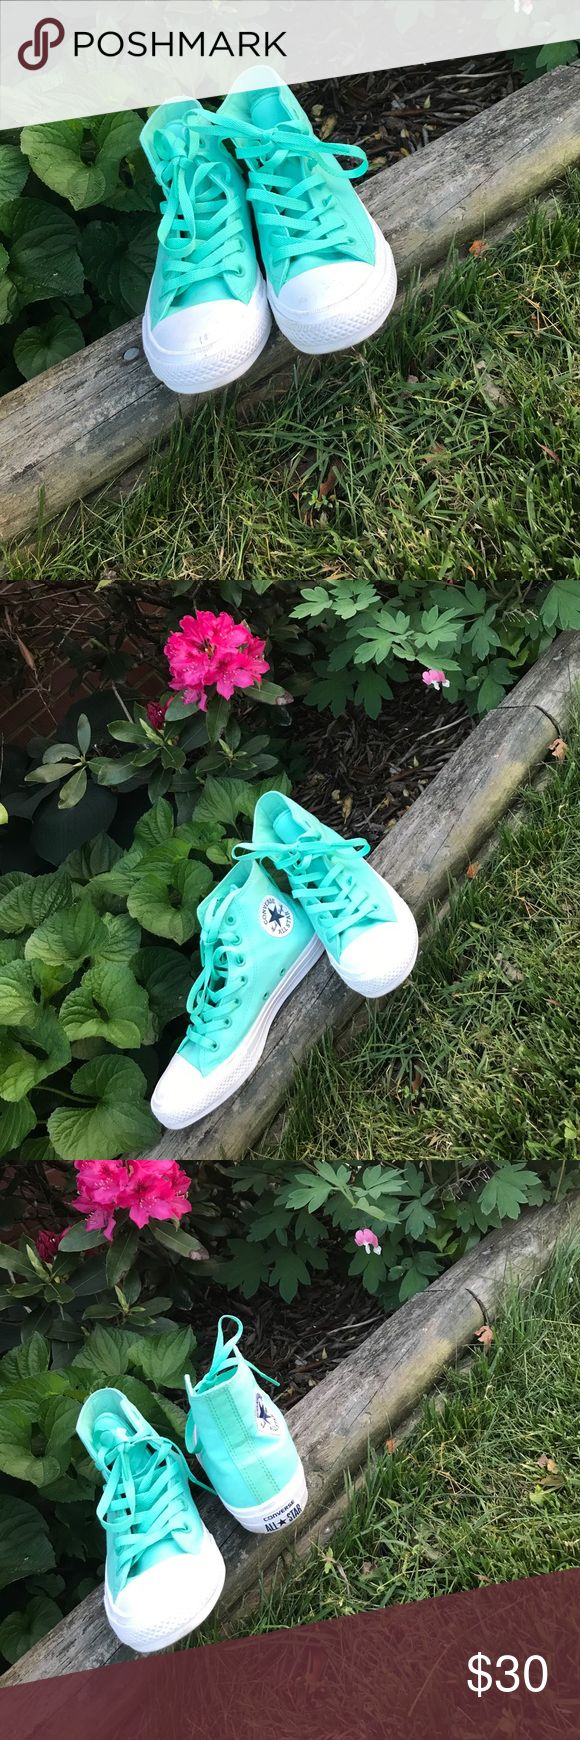 Sneakers Turquoise Converse Sneakers Converse Shoes Sneakers